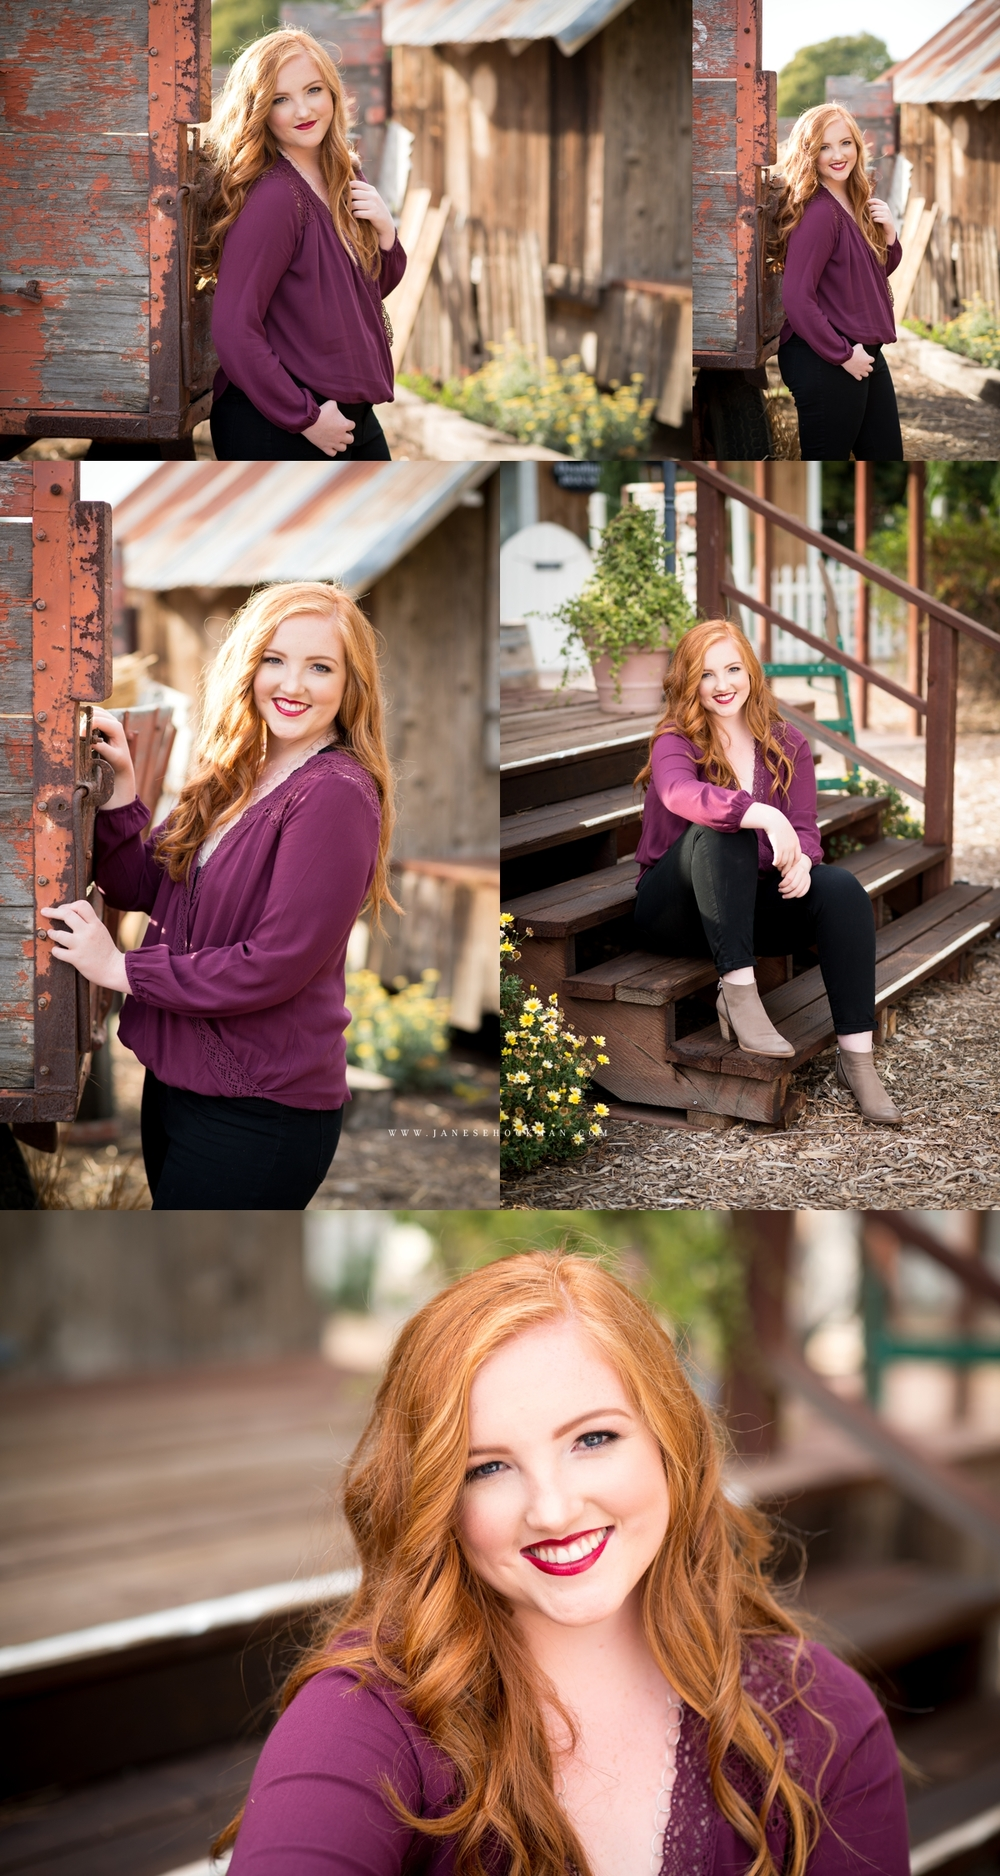 Grace-Janese Hockman Photography San Luis Obispo High School Senior Portraits 1.jpg